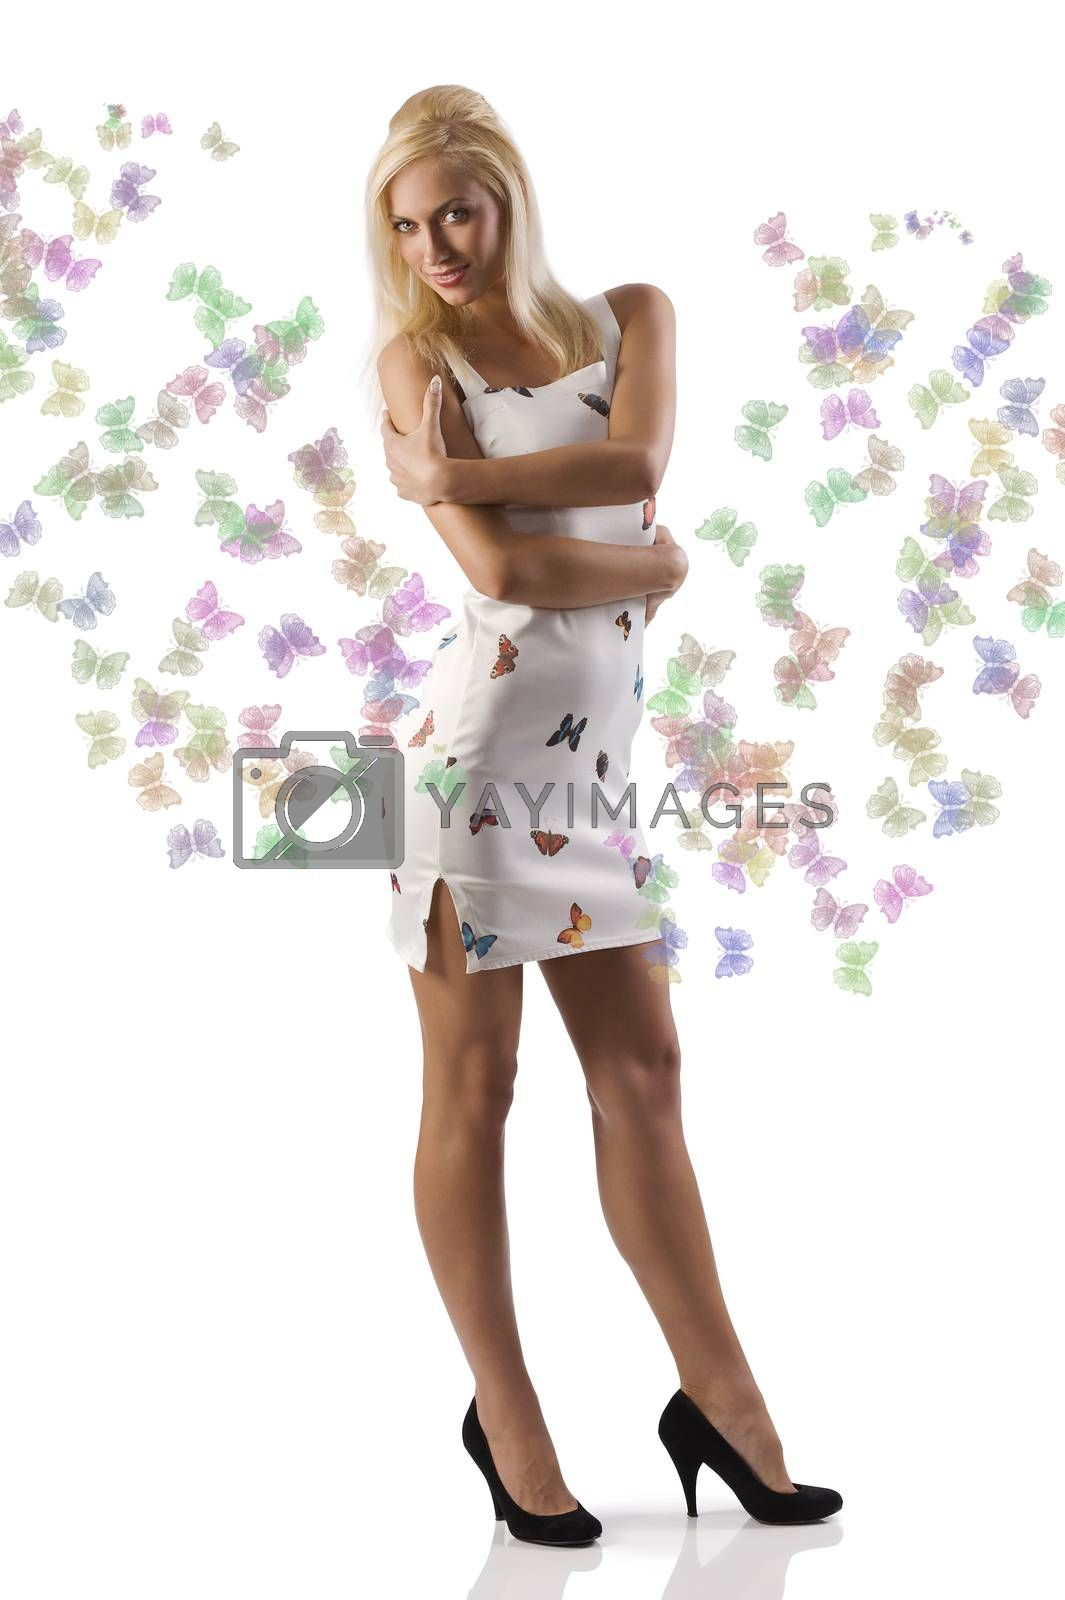 Royalty free image of blond girl white dess by fotoCD